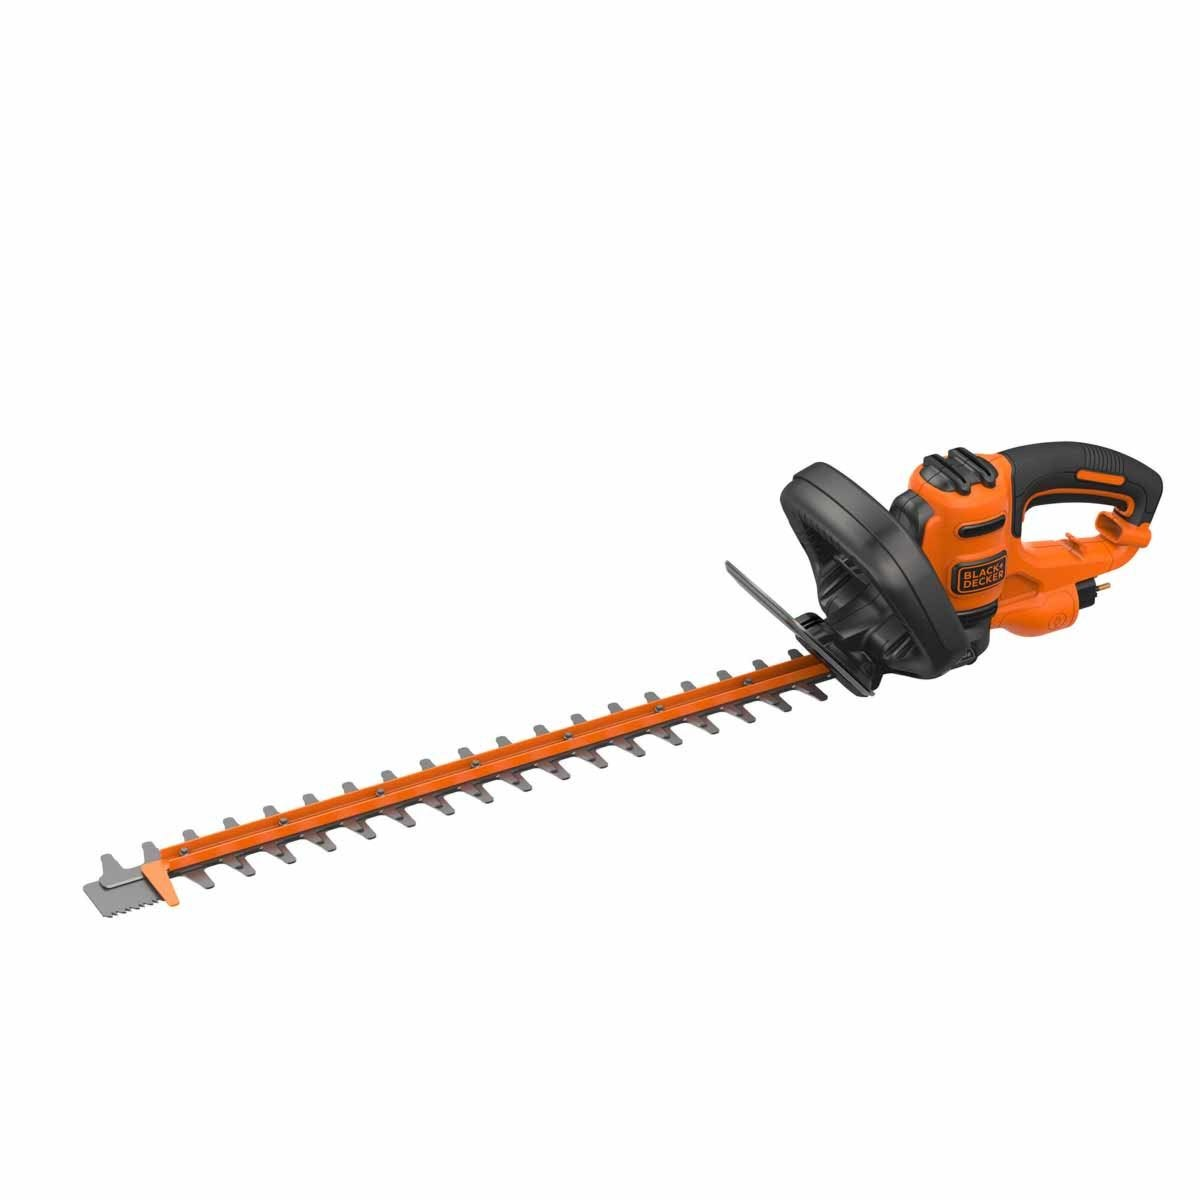 Black and Decker 600w Corded 60cm Hedge Trimmer